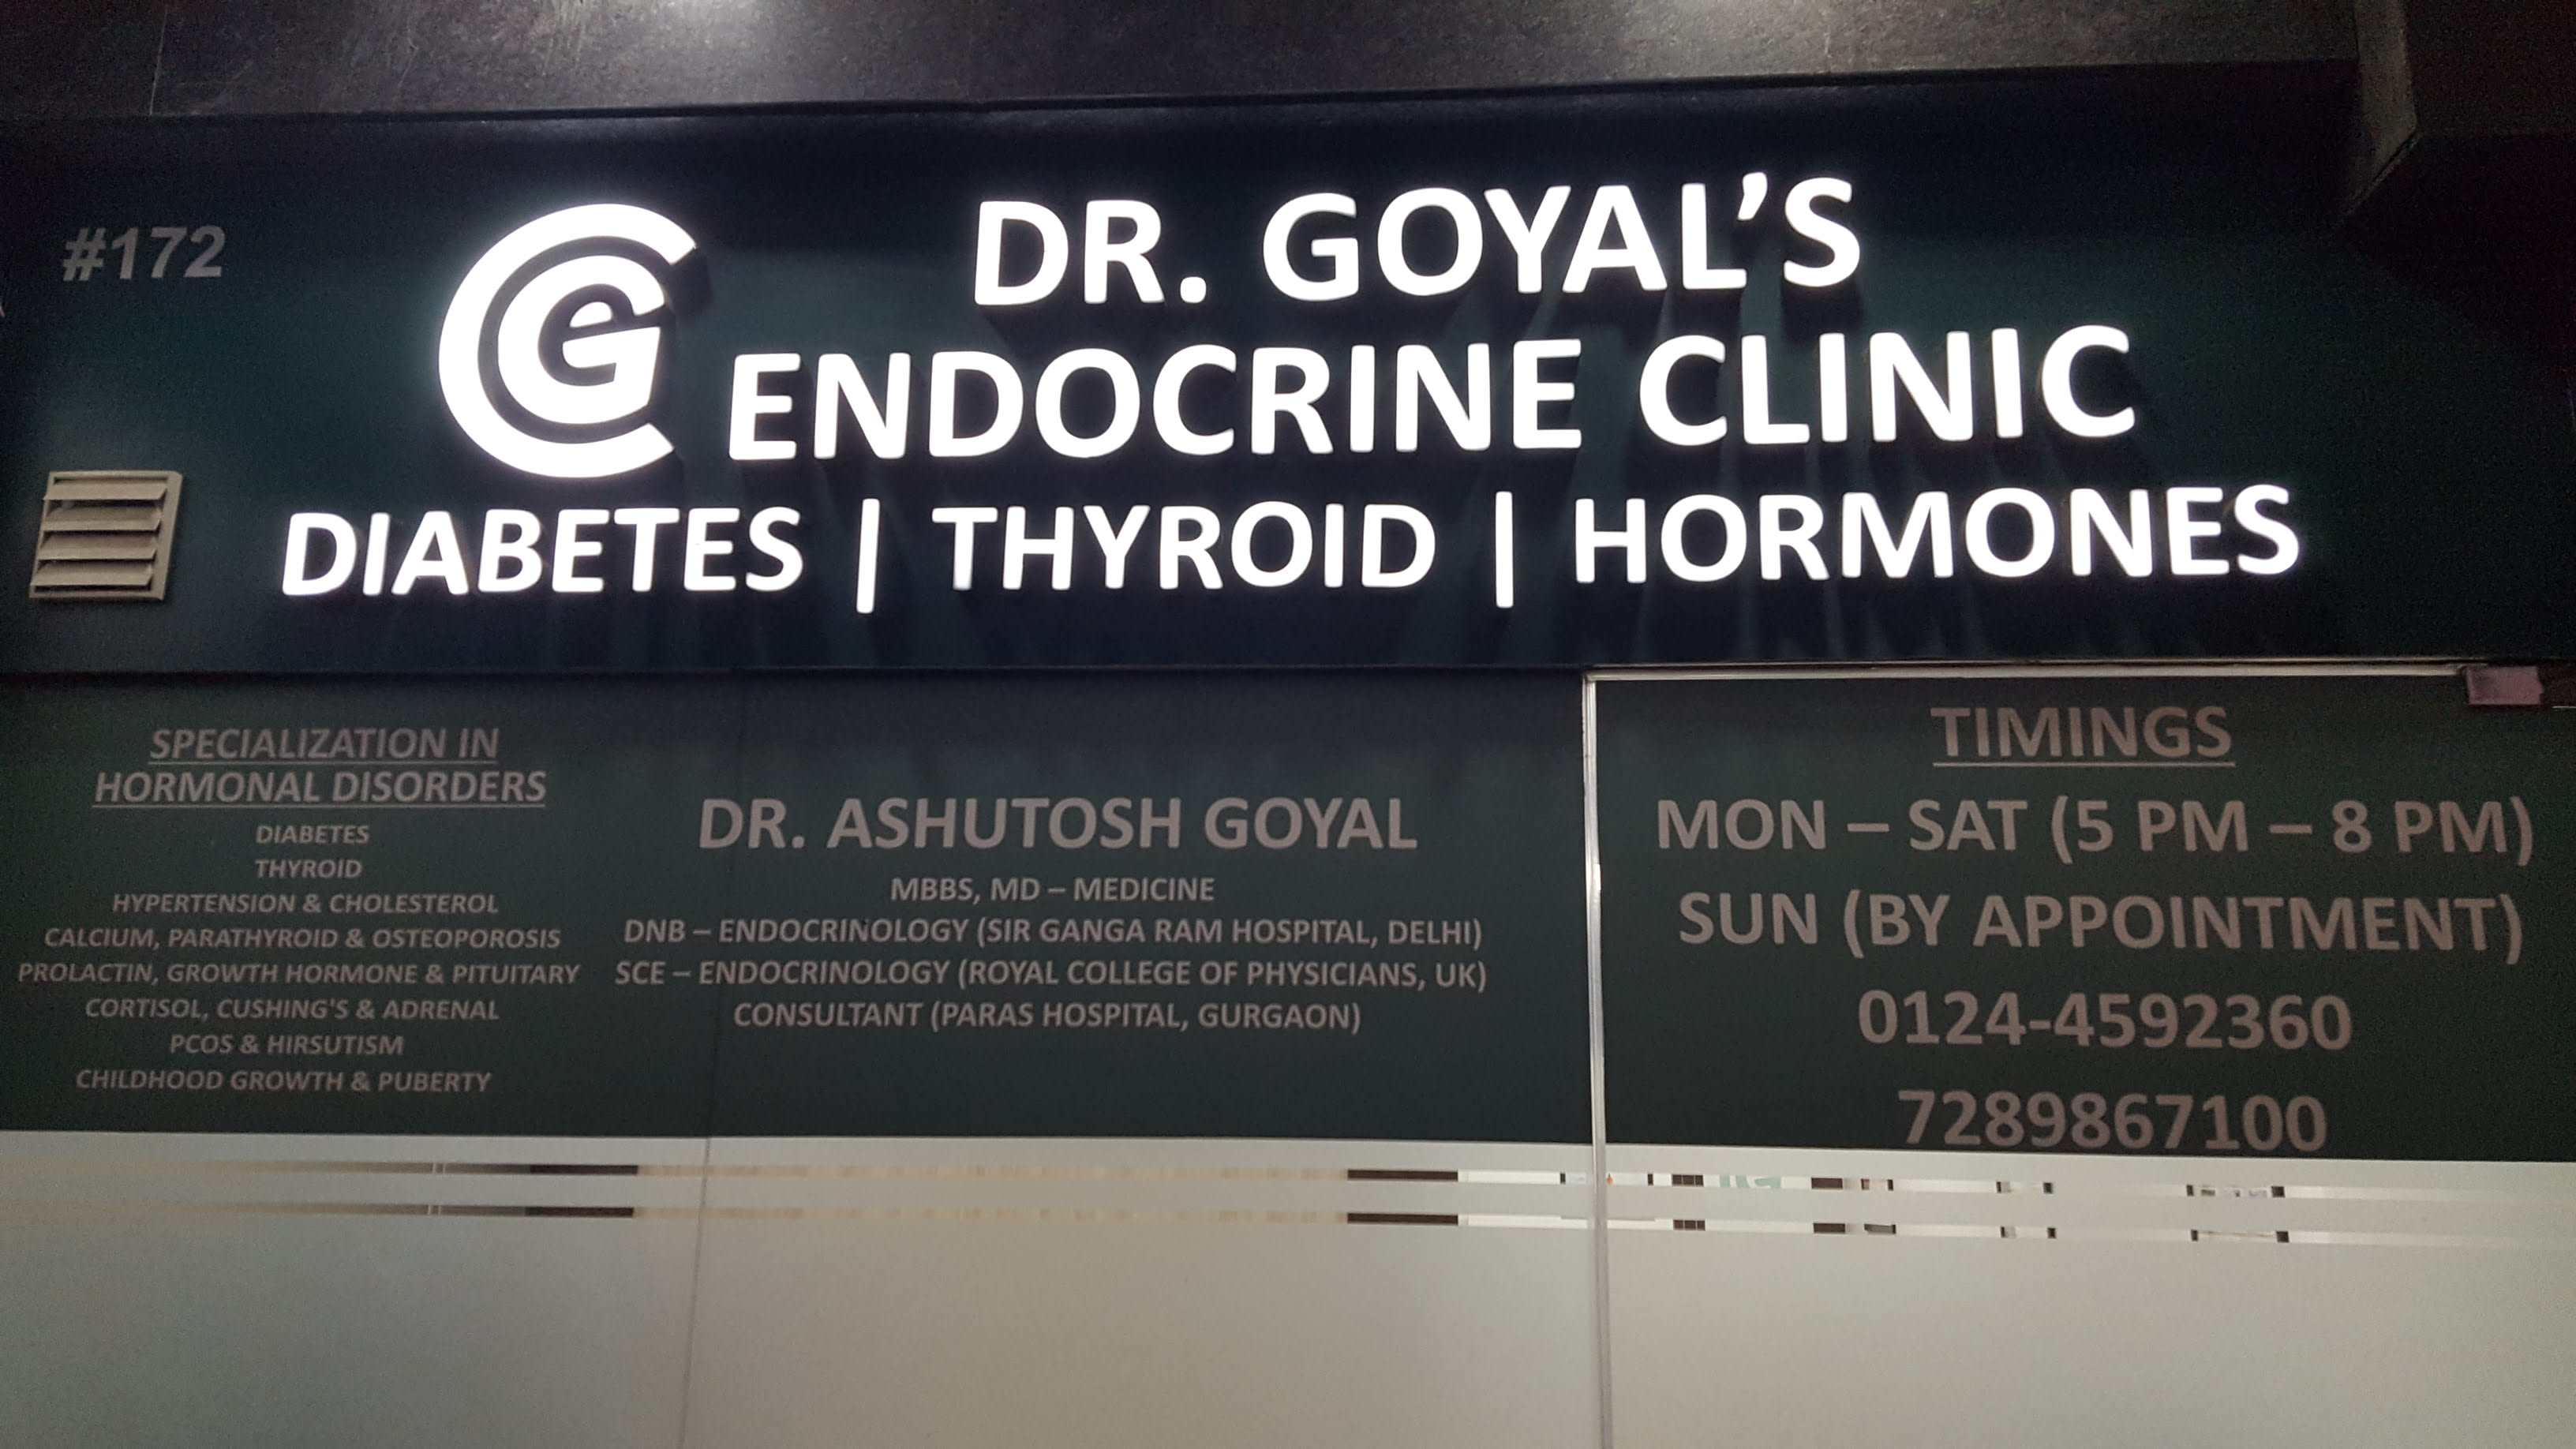 Endocrinologists in Medanta, Gurgaon - Book Instant Appointment